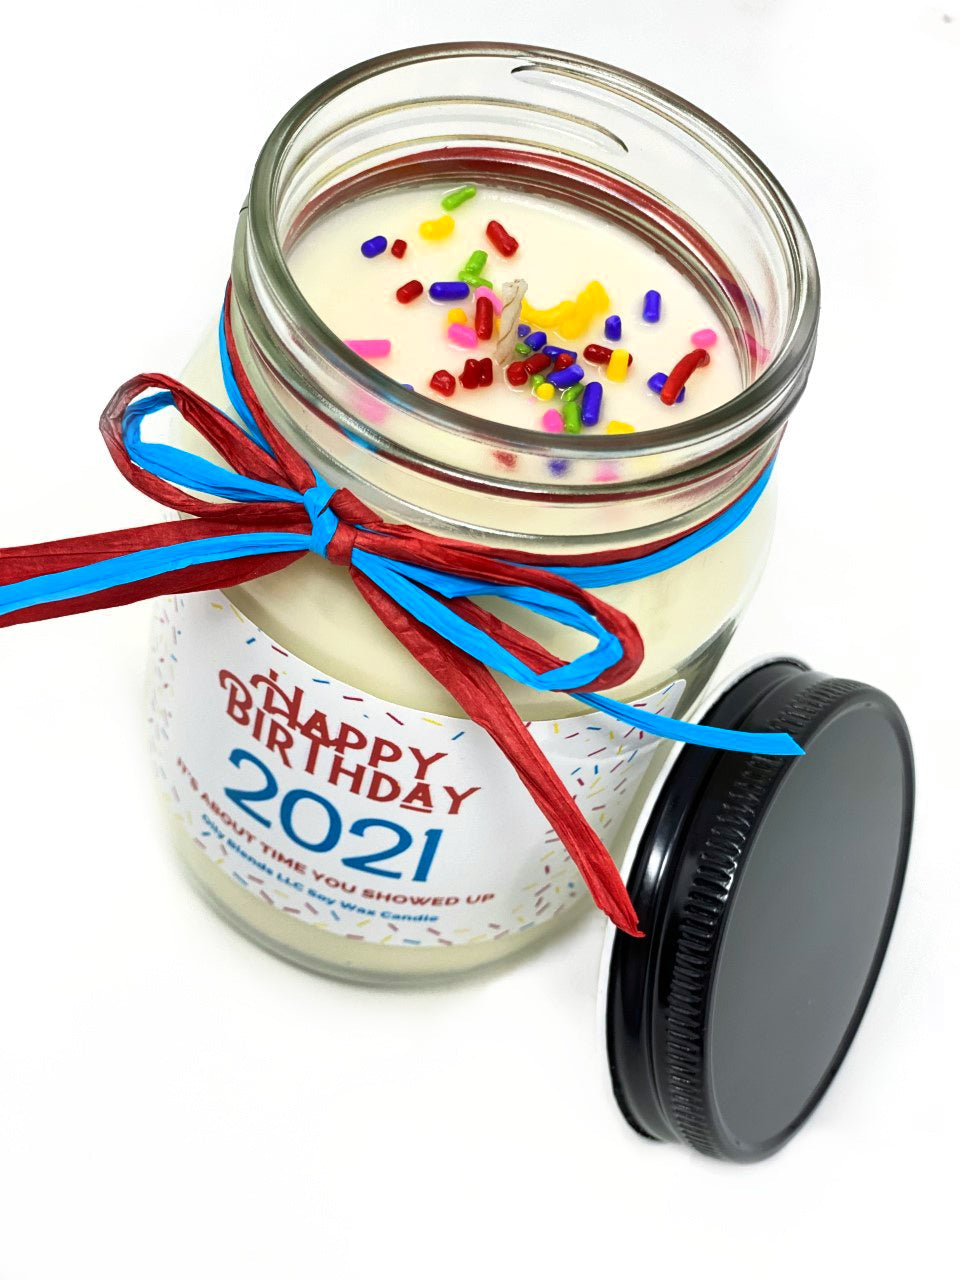 Happy Birthday 2021 Products-Jumbo Candle-Womens Artisan USA American Made Clothing Accessories